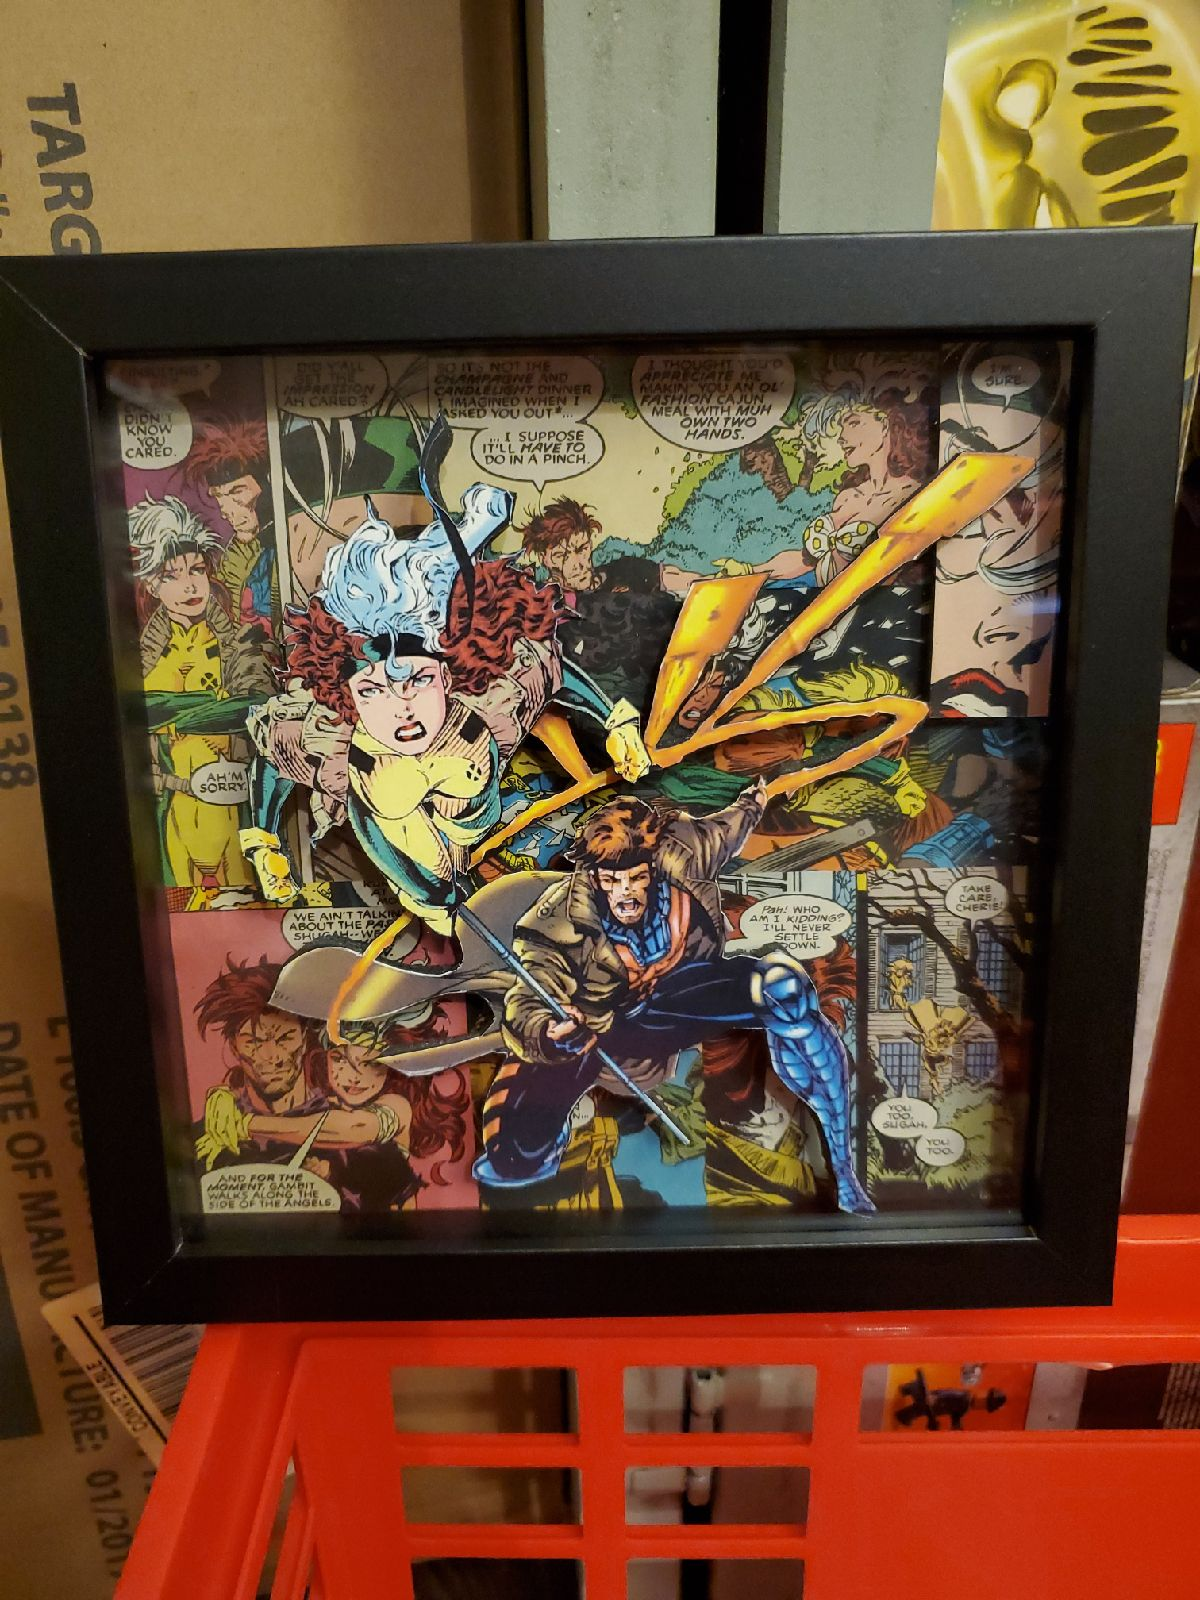 Rogue & Gambit 3D framed Marvel collage